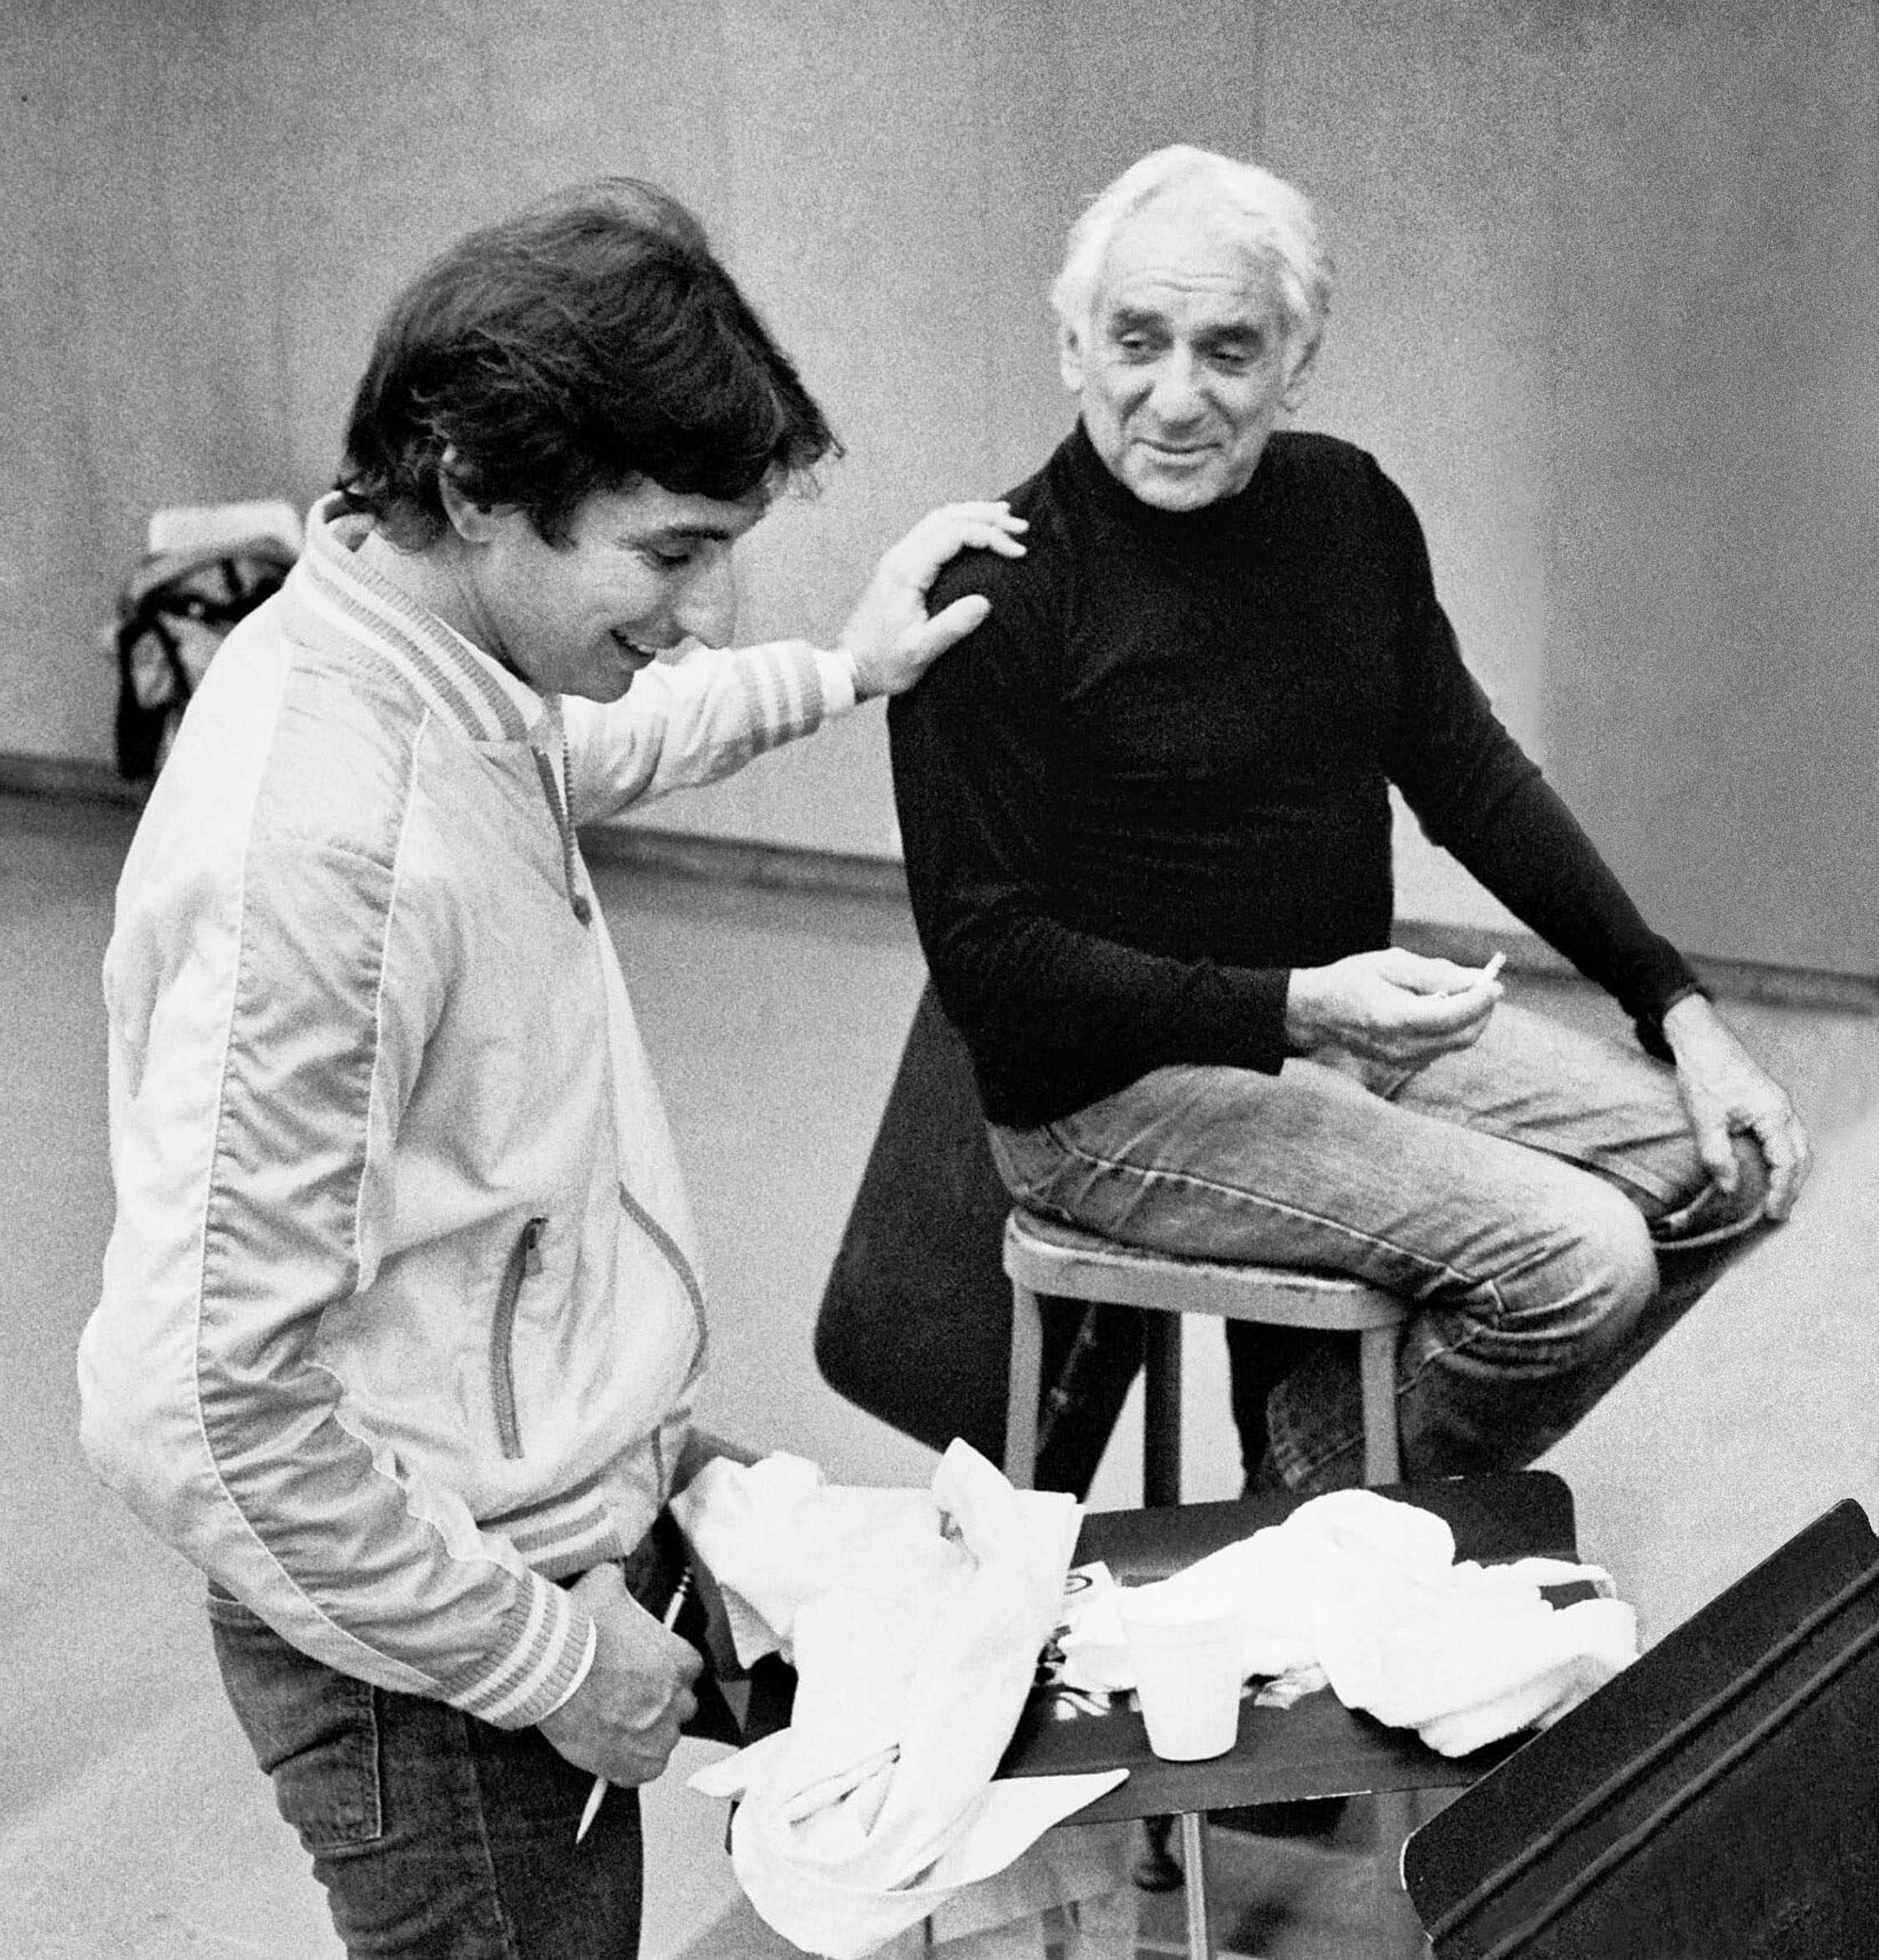 Michael Tilson Thomas and Leonard Bernstein, 1983 © Robert Millard